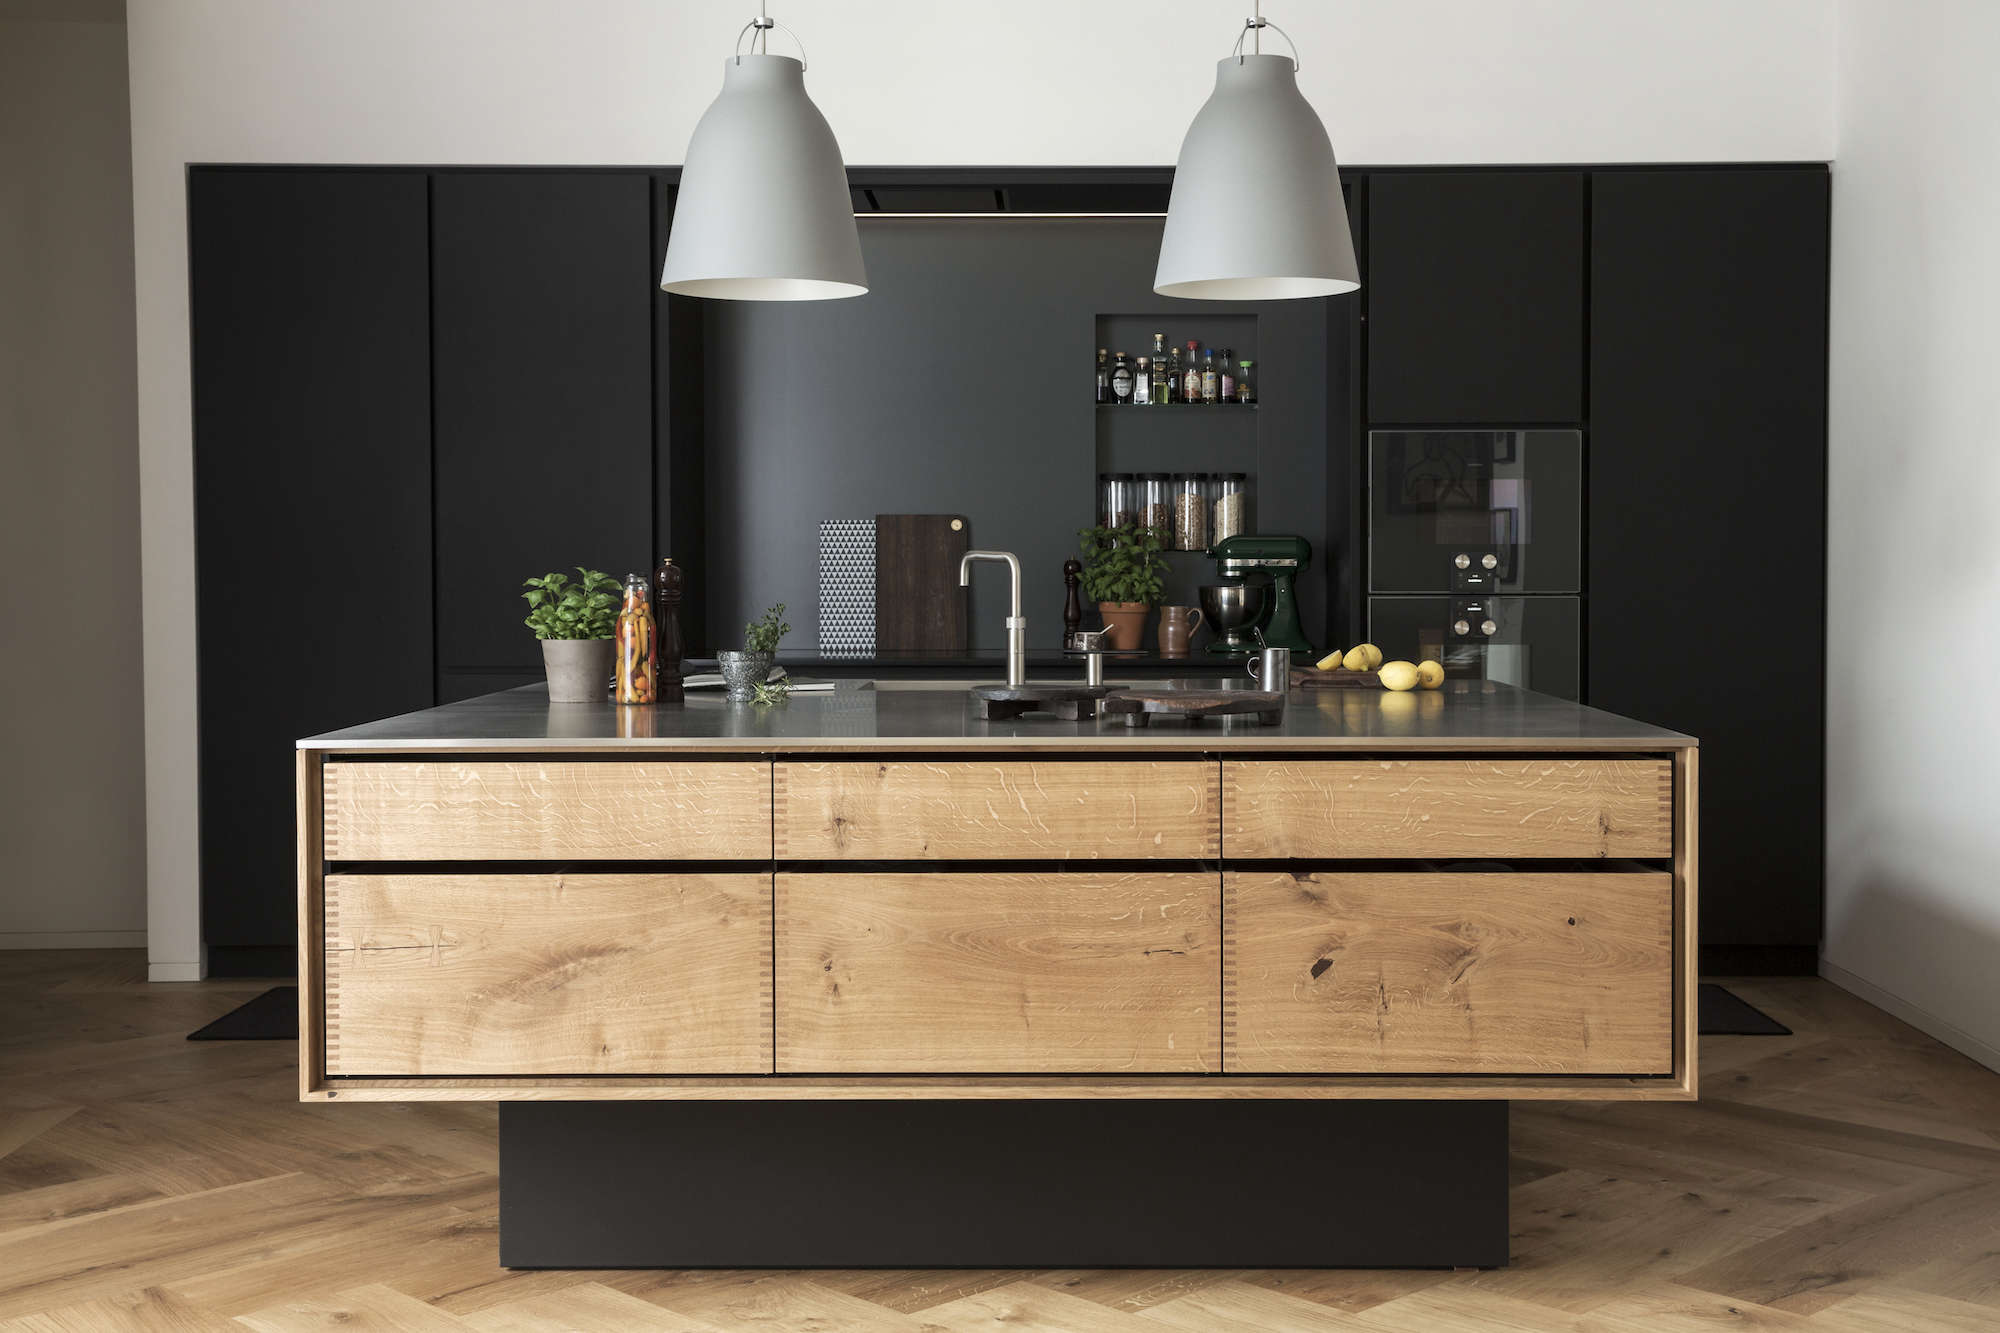 10 Favorites: Black Kitchen Backsplashes - Remodelista